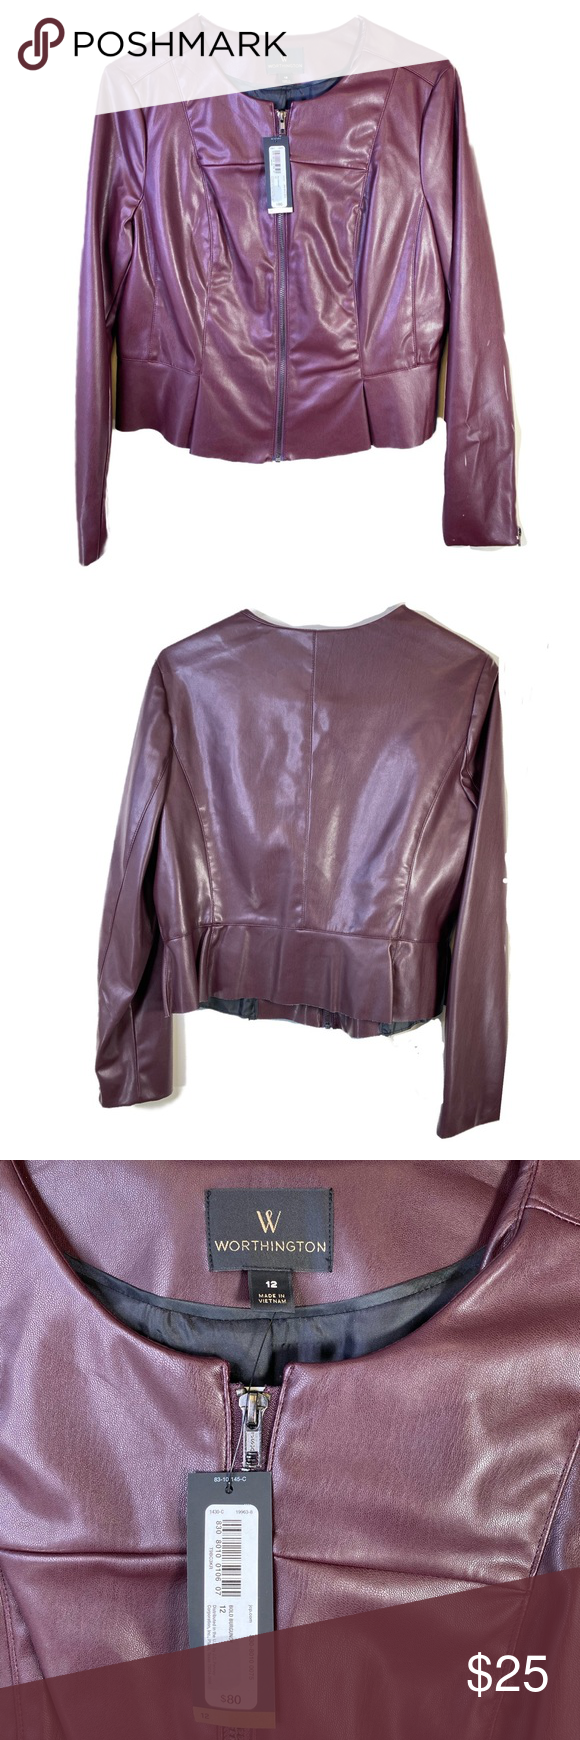 Maje burgundy leather biker jacket Clothes design